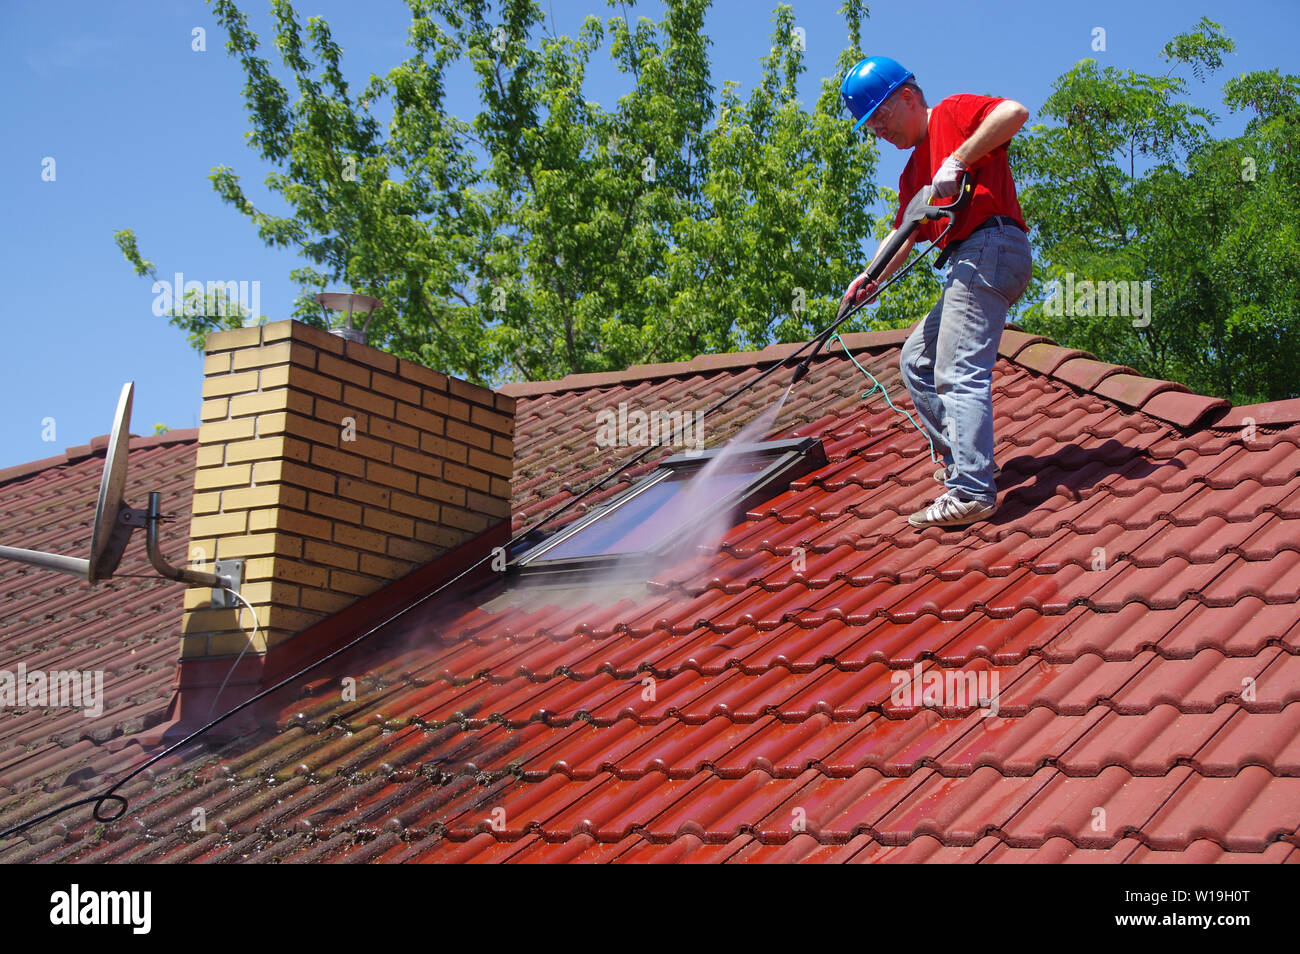 House roof cleaning with pressure tool  Worker on top of